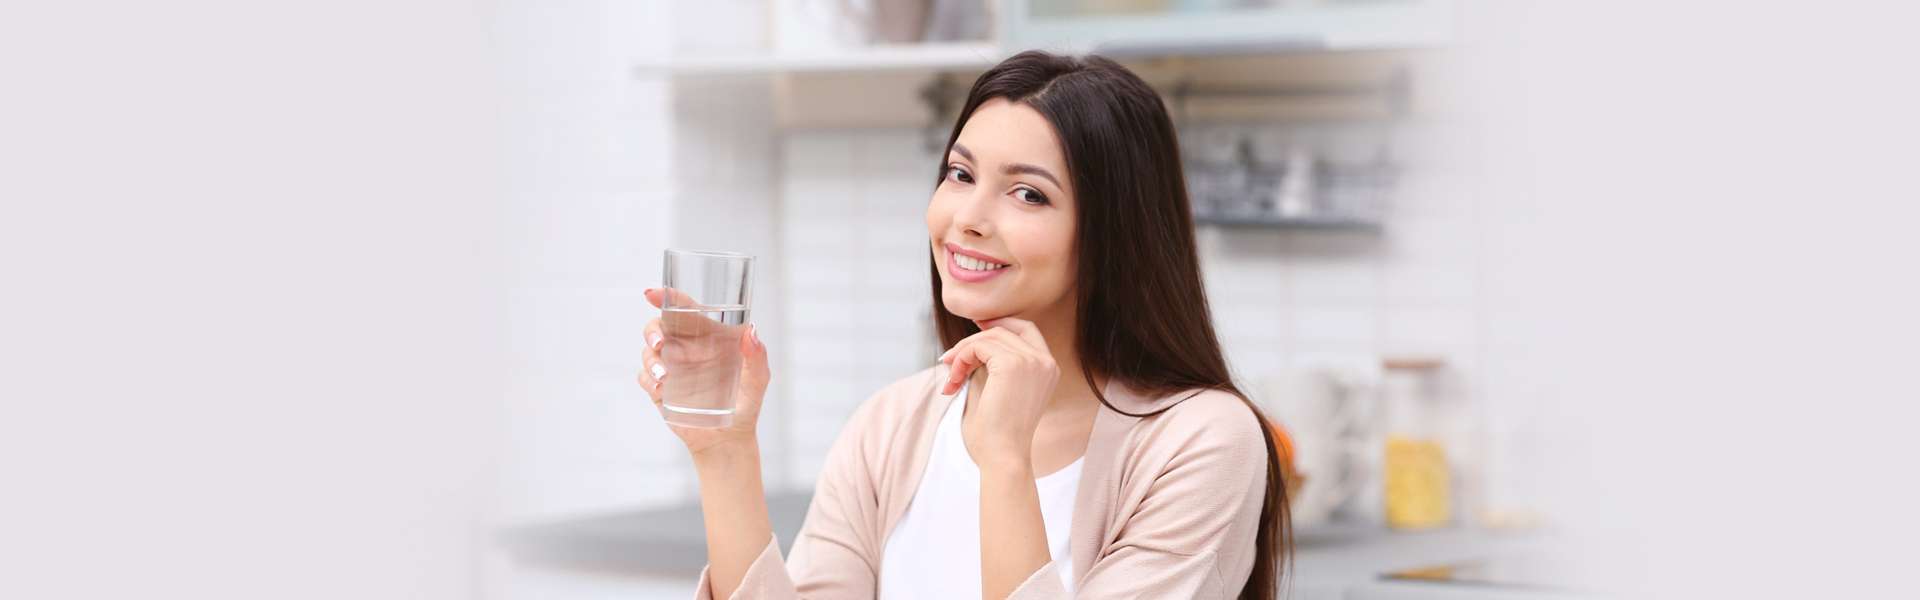 How Do Fluoride Treatments Protect Our Oral Health?